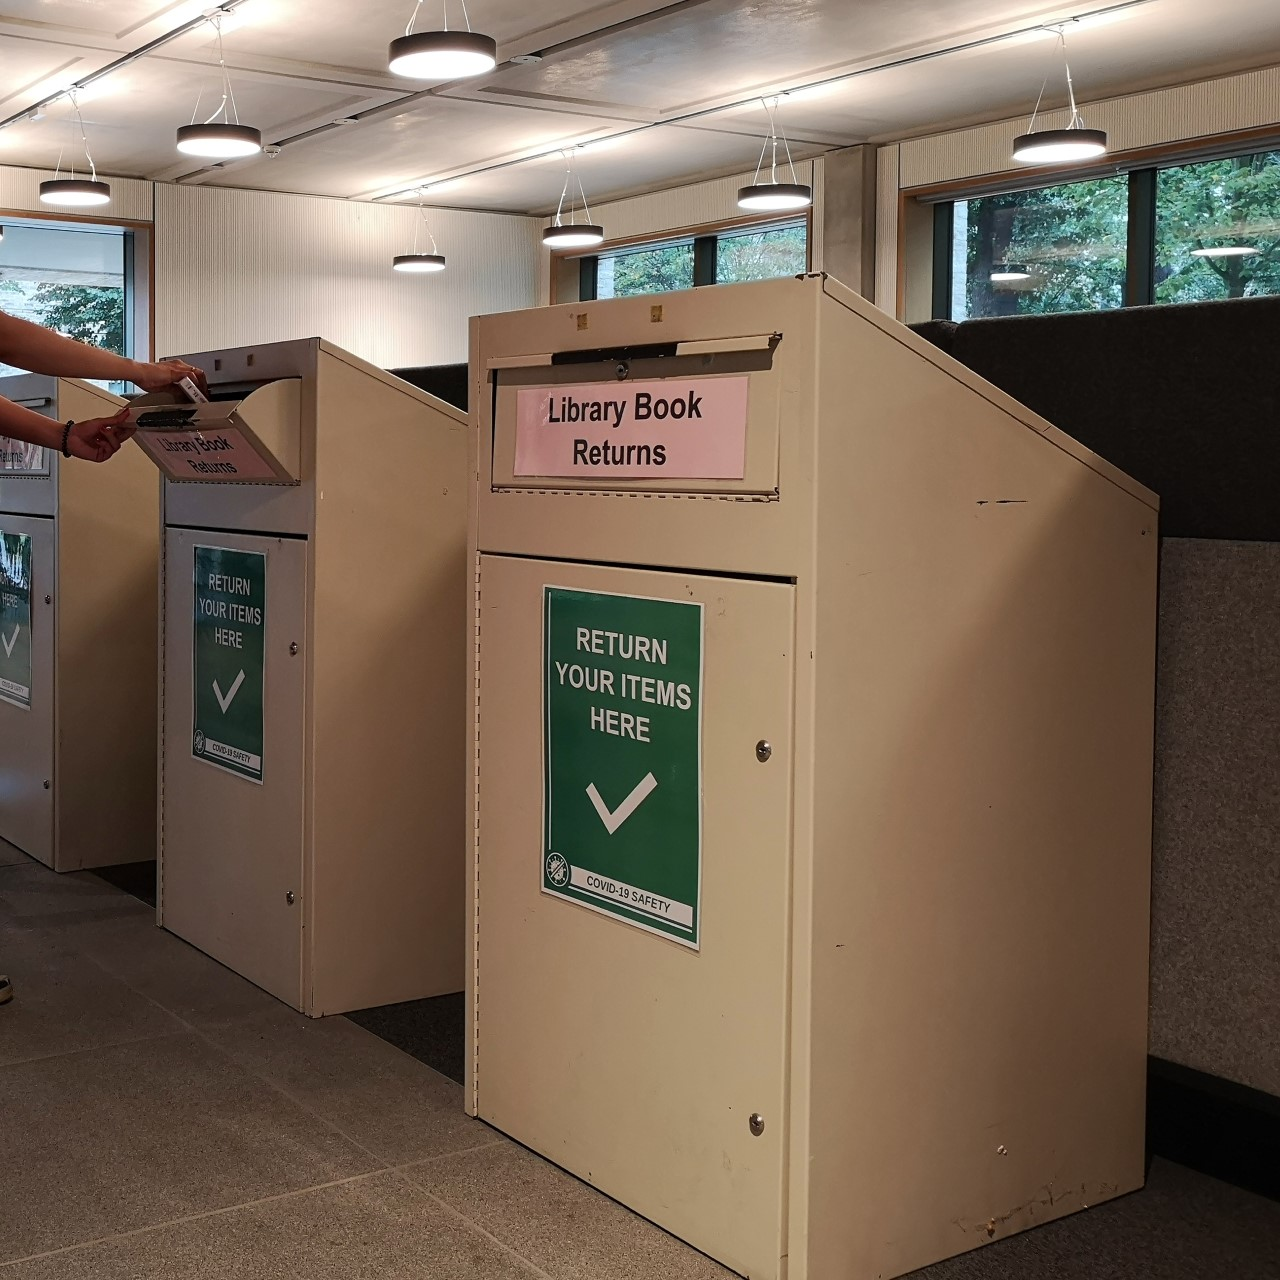 Three Book Returns bins in the Library foyer. The slot to put returned items into is at the top of each box.